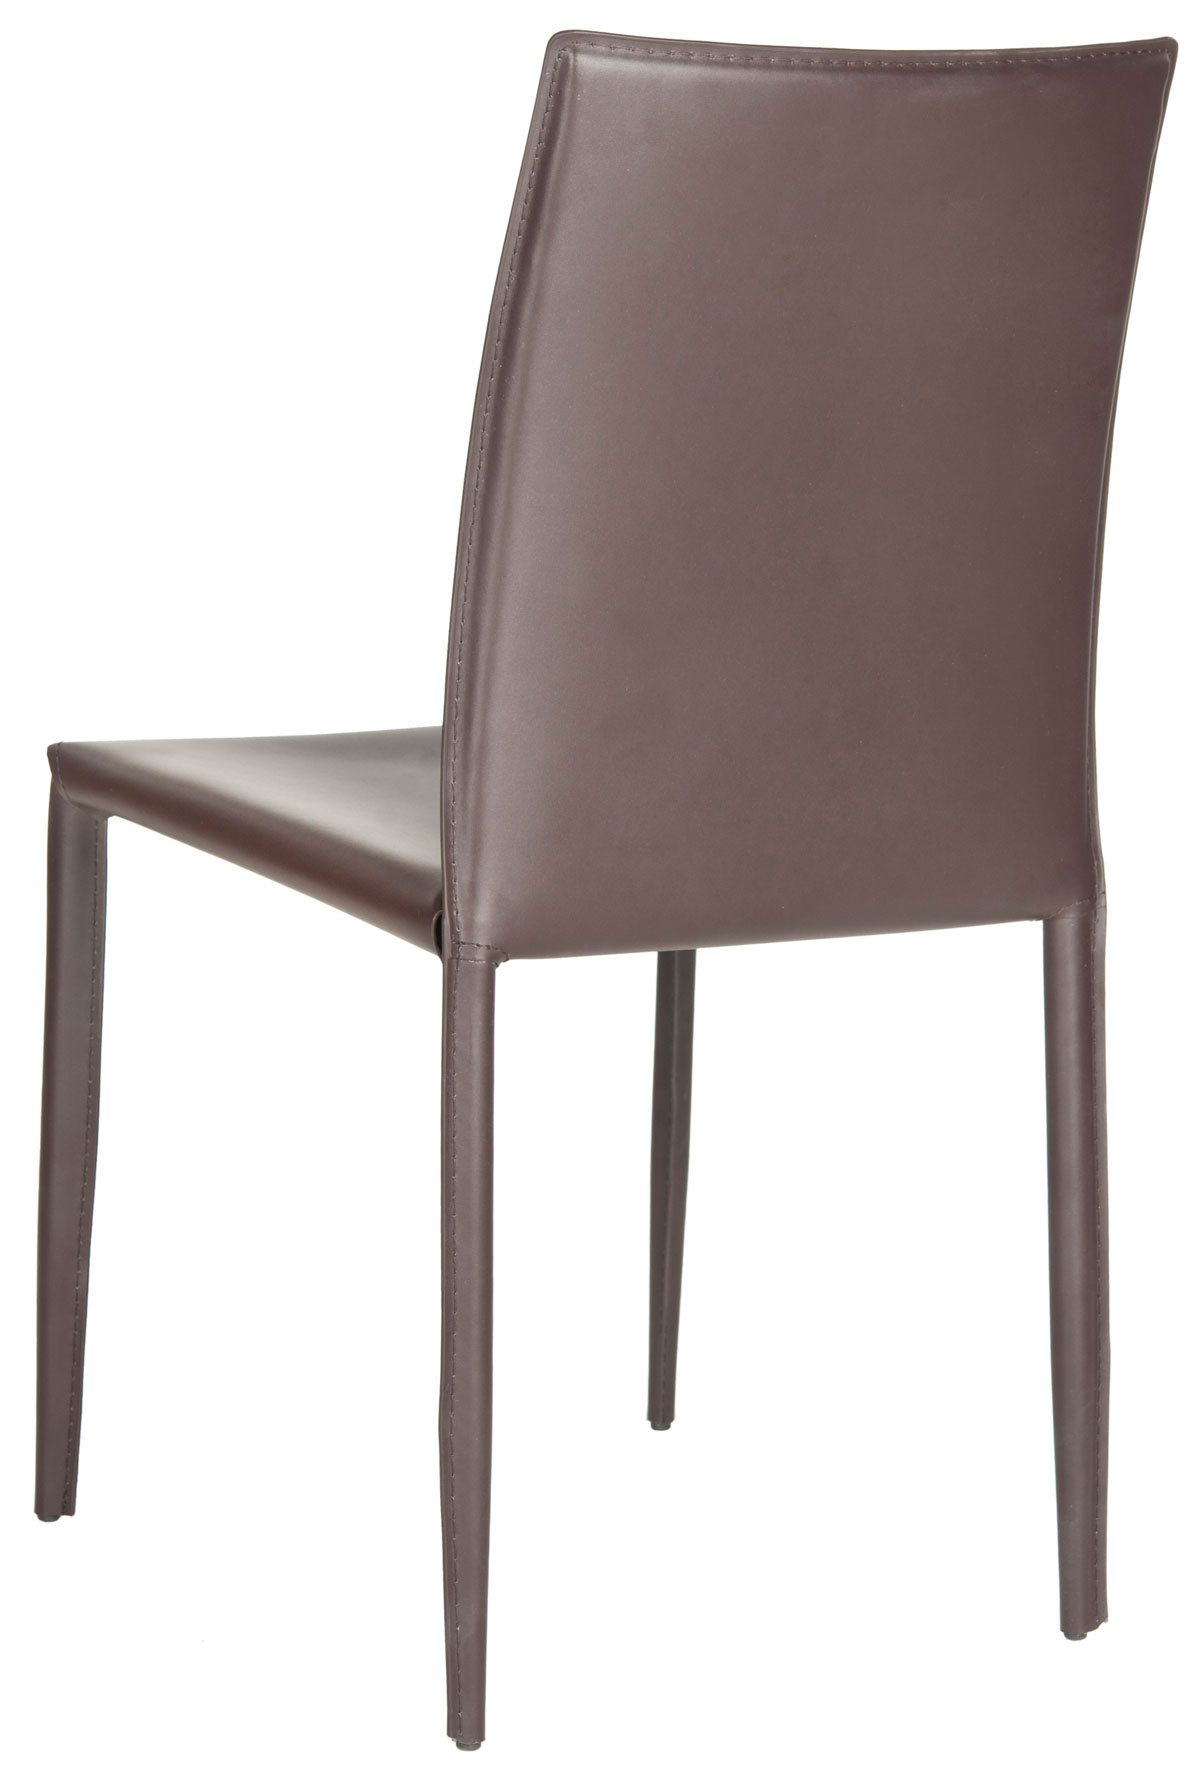 safavieh karna dining chair mahogany room table and 8 chairs fox2009h set2 furniture by